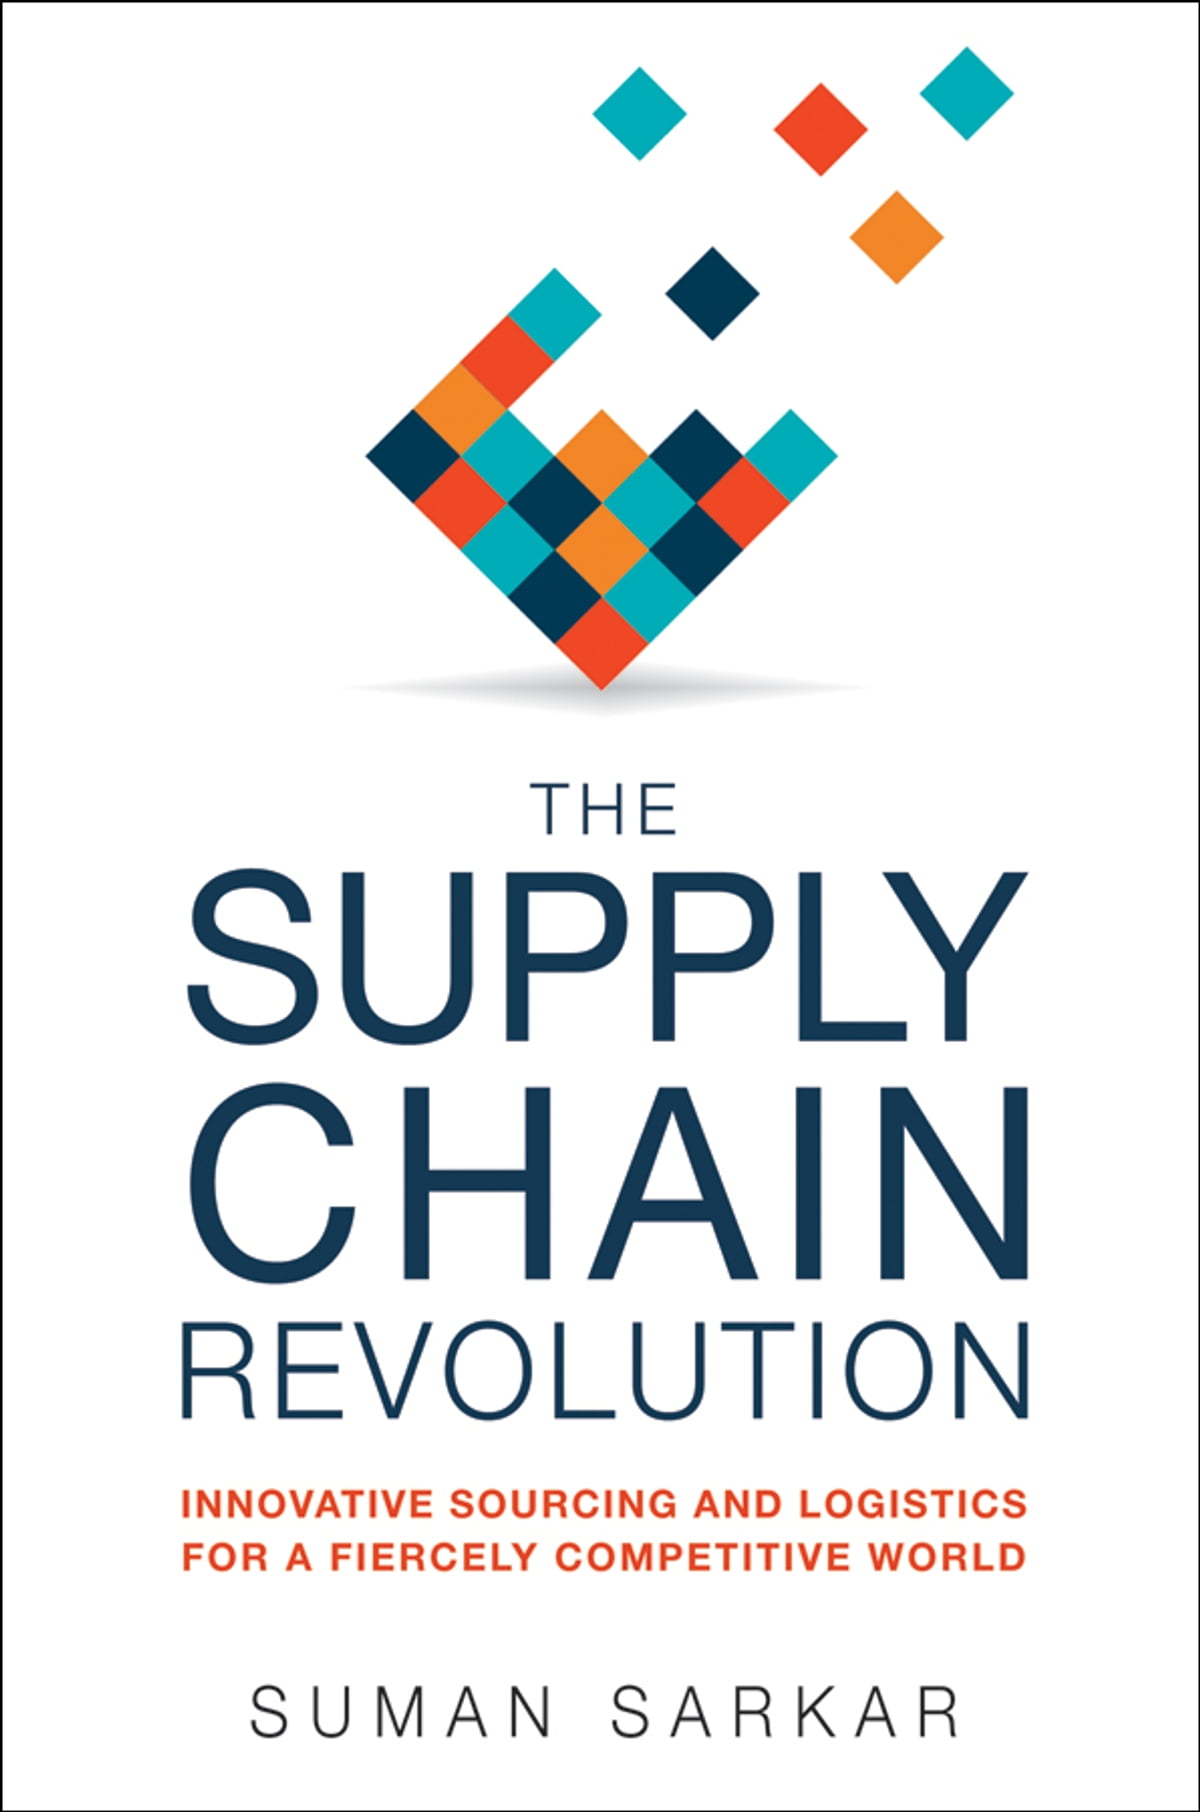 b4b how technology and big data are reinventing the customersupplier relationship dvlyzdaj